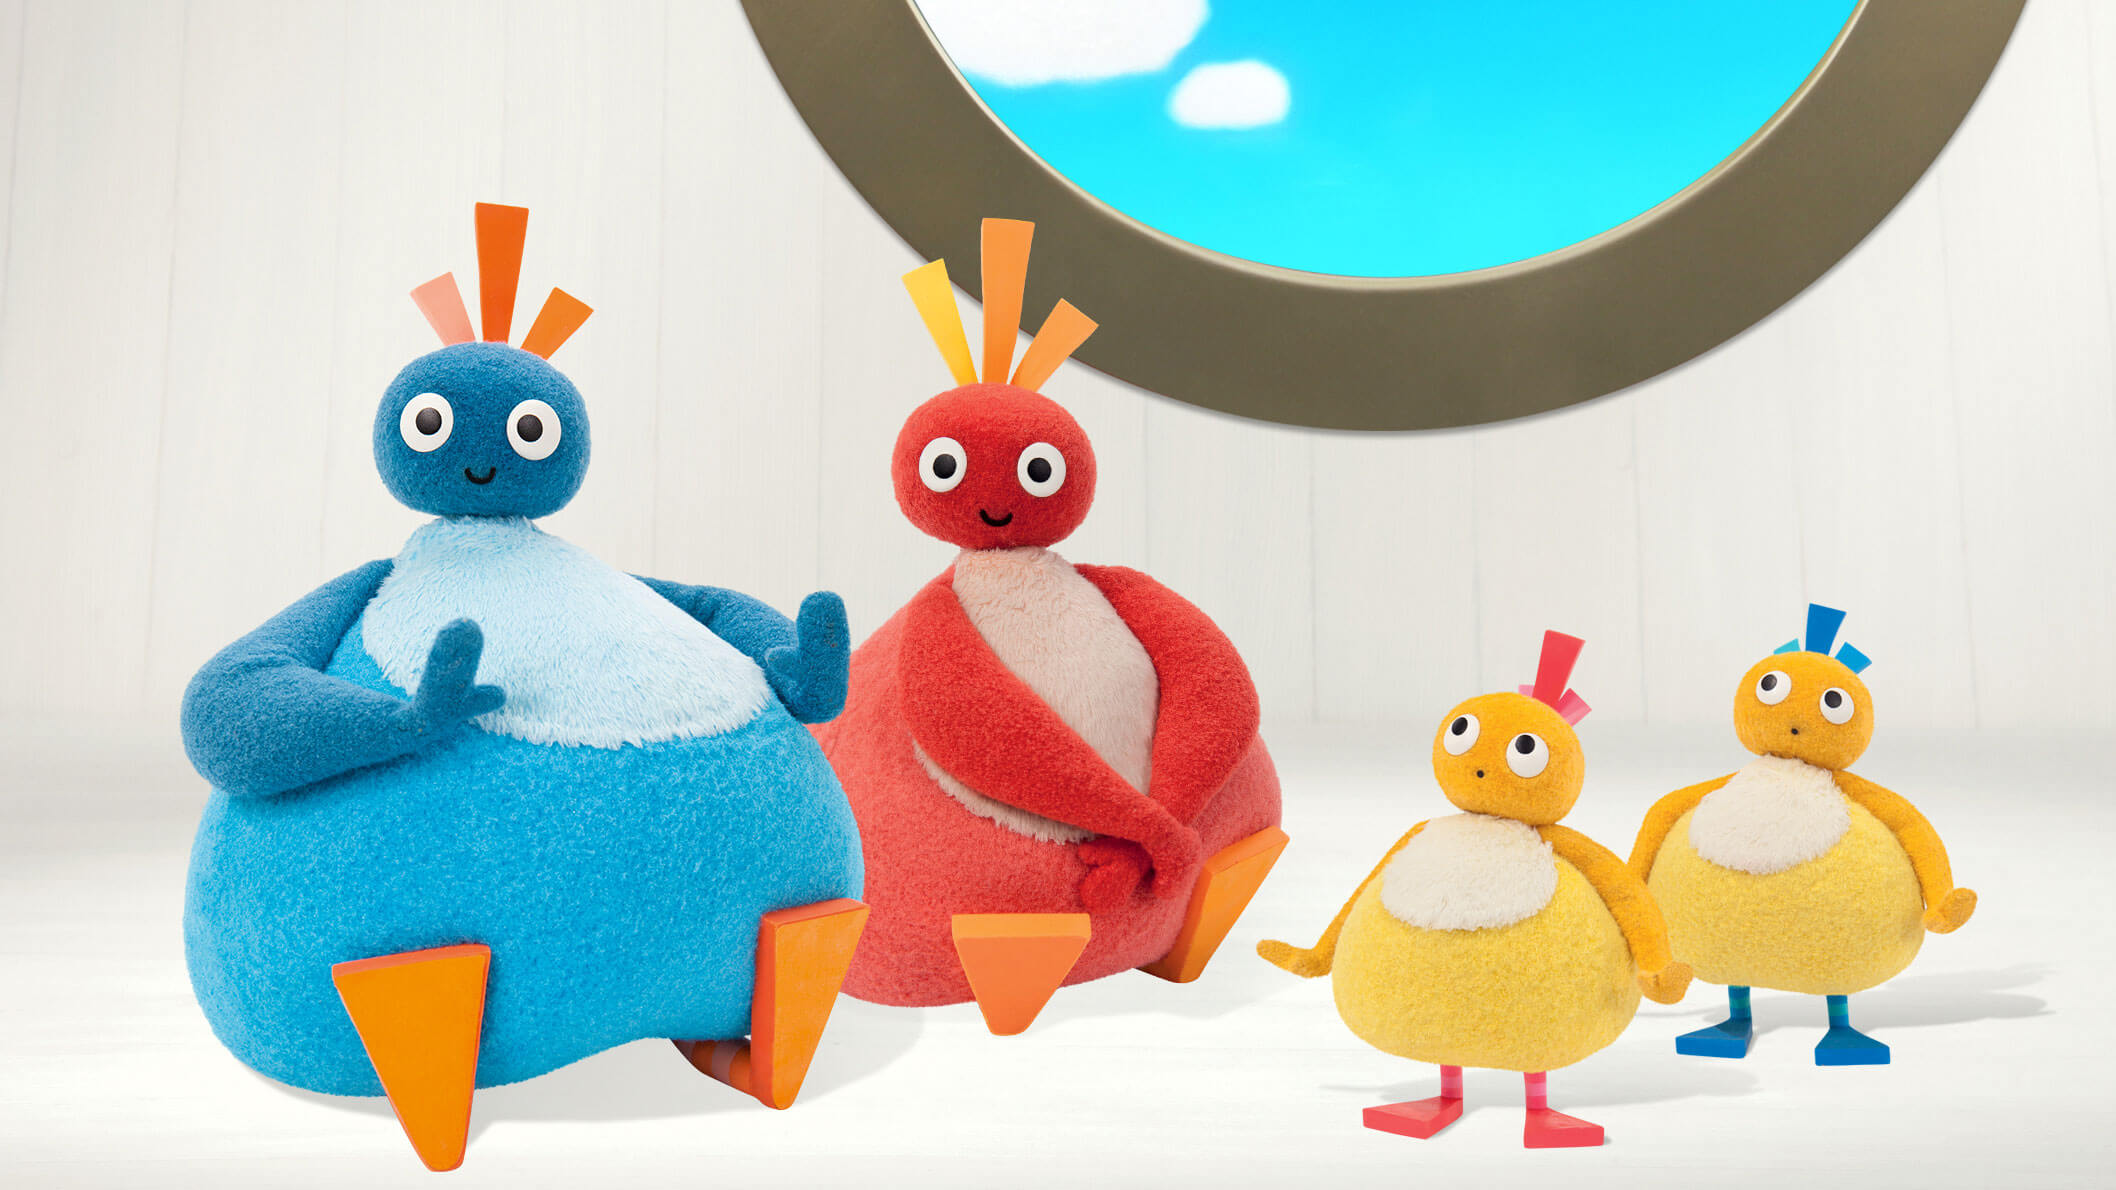 A round, blue character and a red character sitting on the ground in front of a white wall and a round window. There are two small, round and yellow characters standing beside them with a worried look on their face.